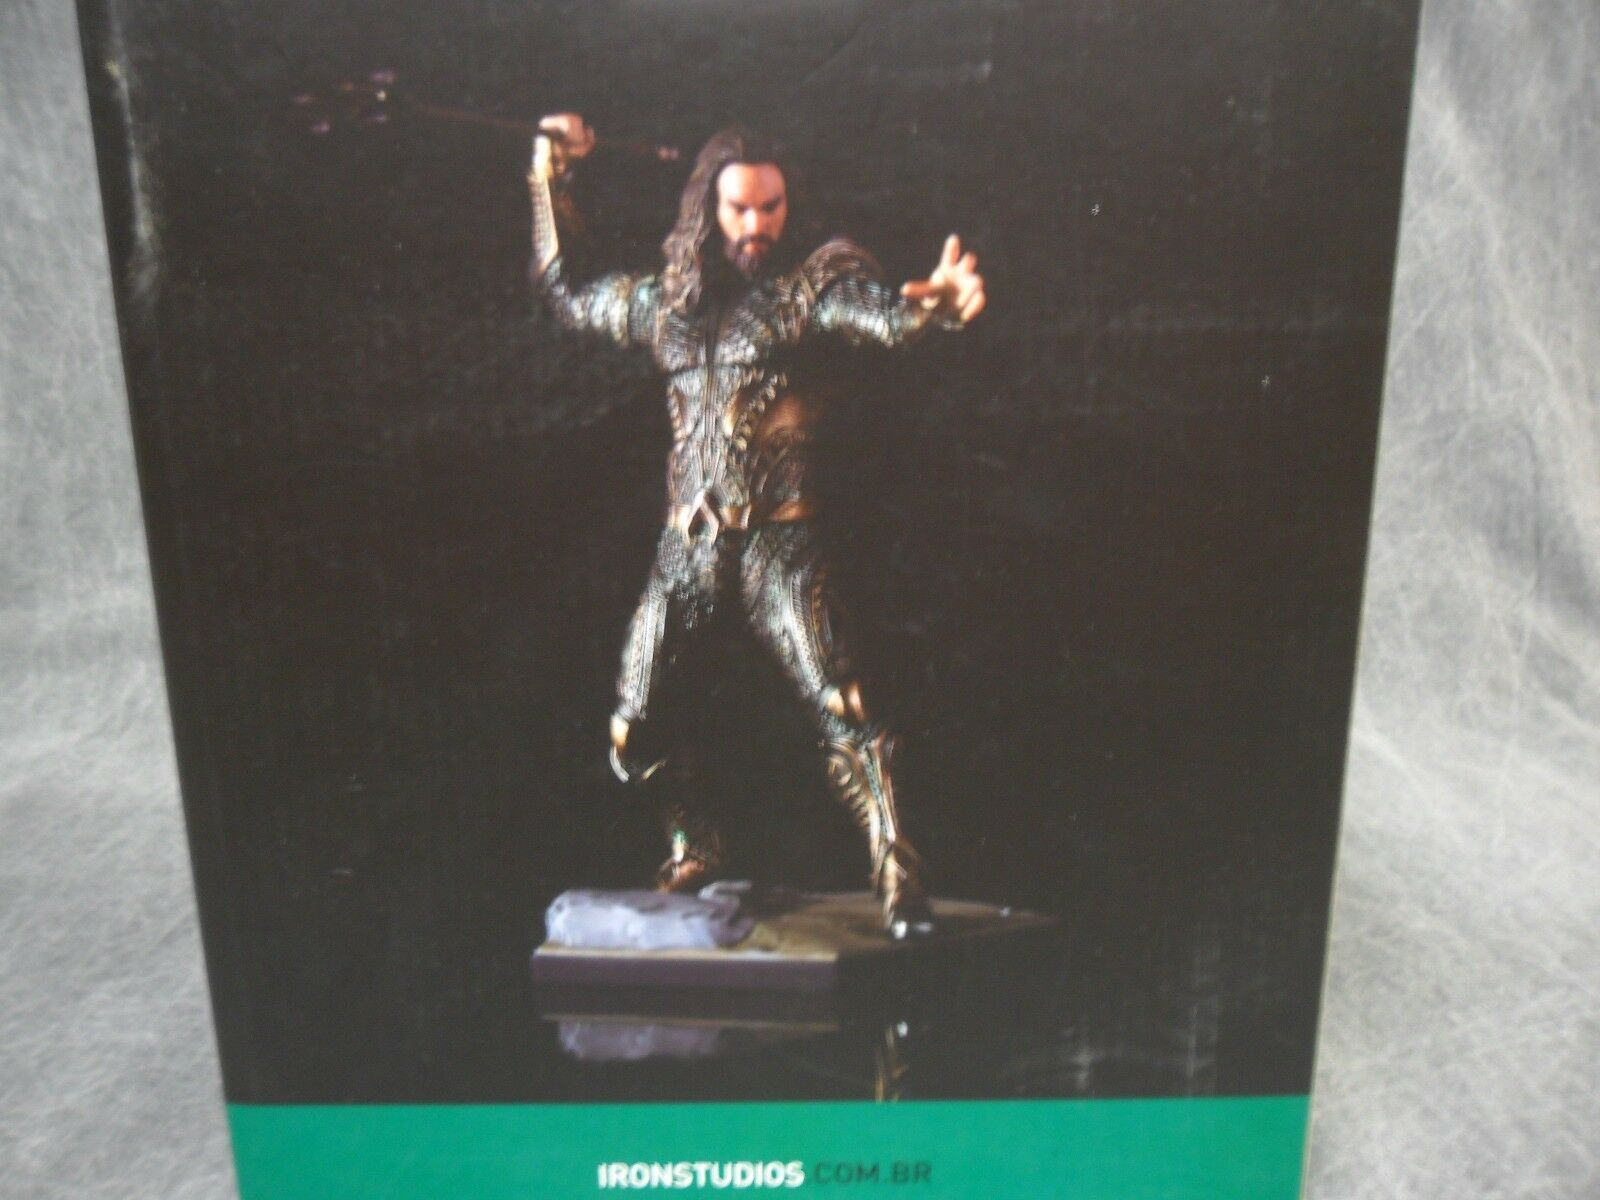 Iron Studios NEW  Aquaman Aquaman Aquaman  Justice League Movie 1:10 Scale Statue Figure f75c7e